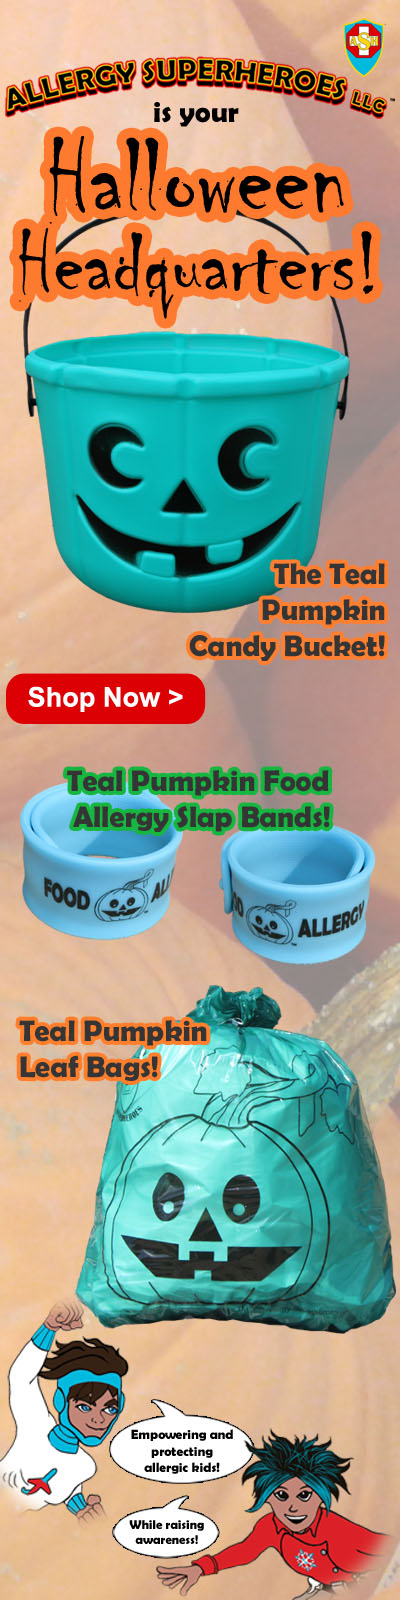 Great Teal Pumpkin Halloween Products from Allergy Superheroes!